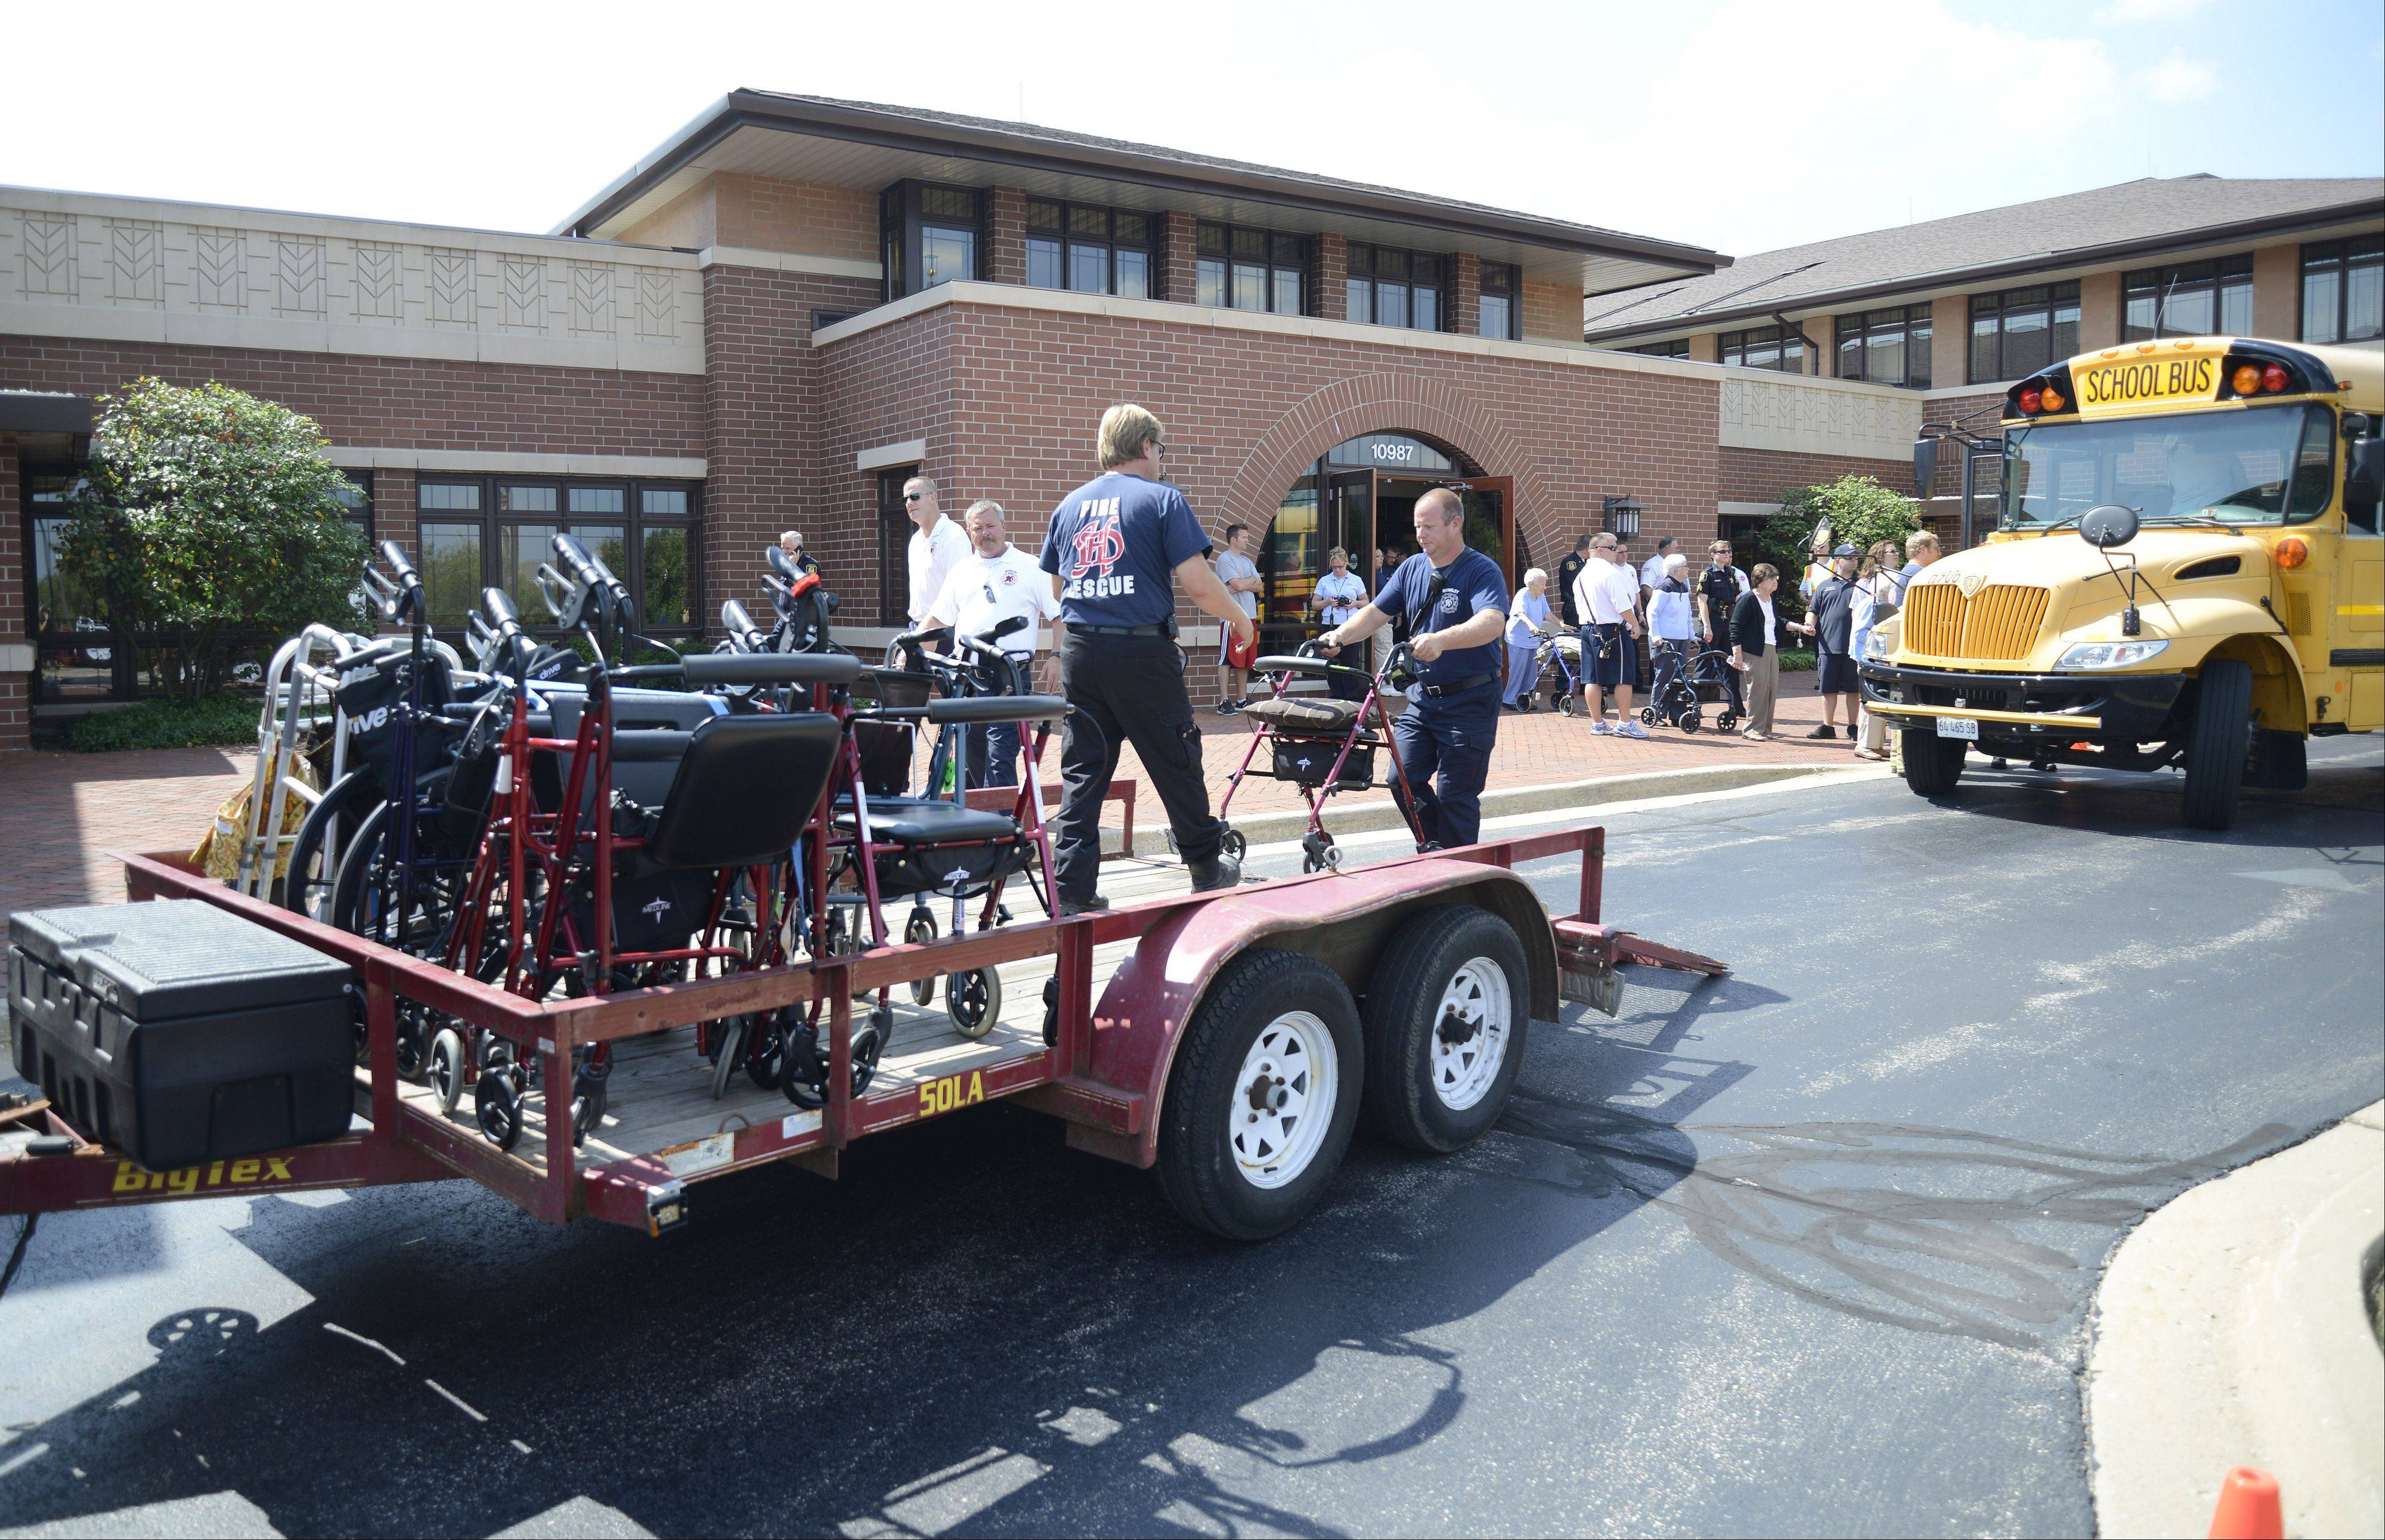 Huntley fire department mechanic, Rob Territo takes a walker from Huntley firefighter/paramedic Eric Smith to load onto a flatbed as residents get onto a bus to be taken home after a gas leak forced their evacuation from supportive and assisted living facilities in Huntley.